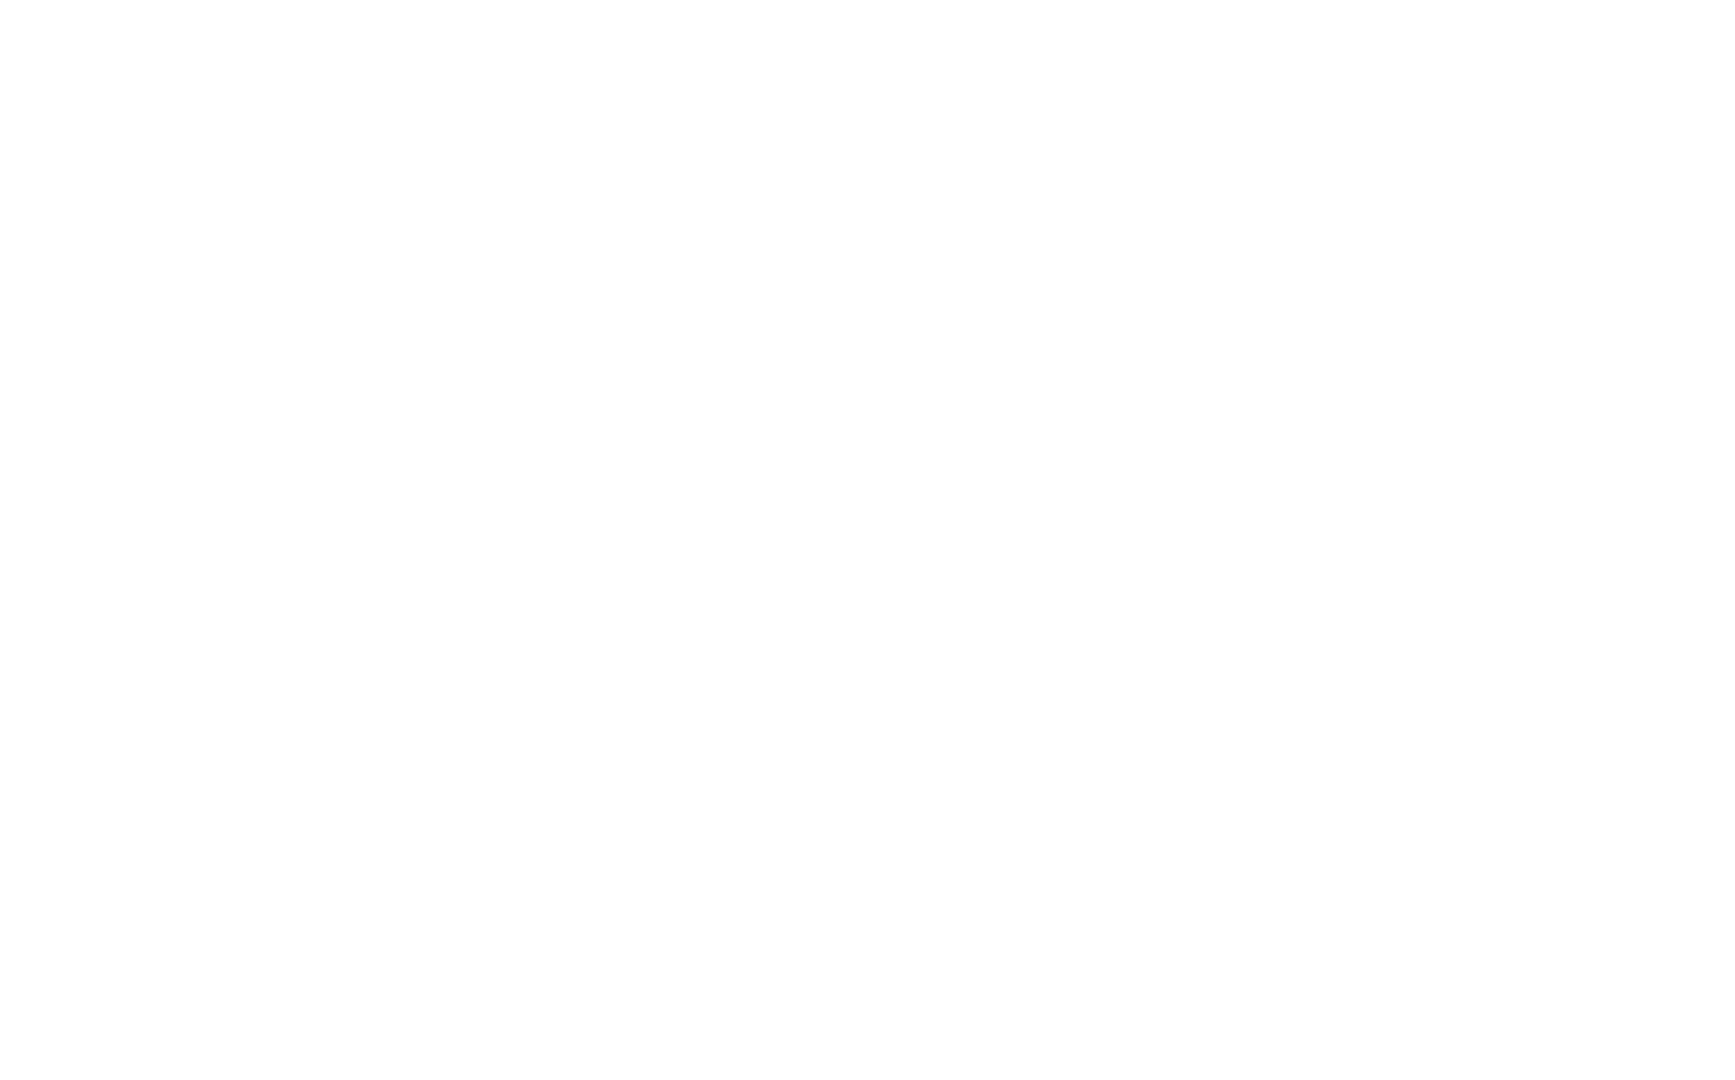 OFFICIAL SELECTION - Native Crossroads F